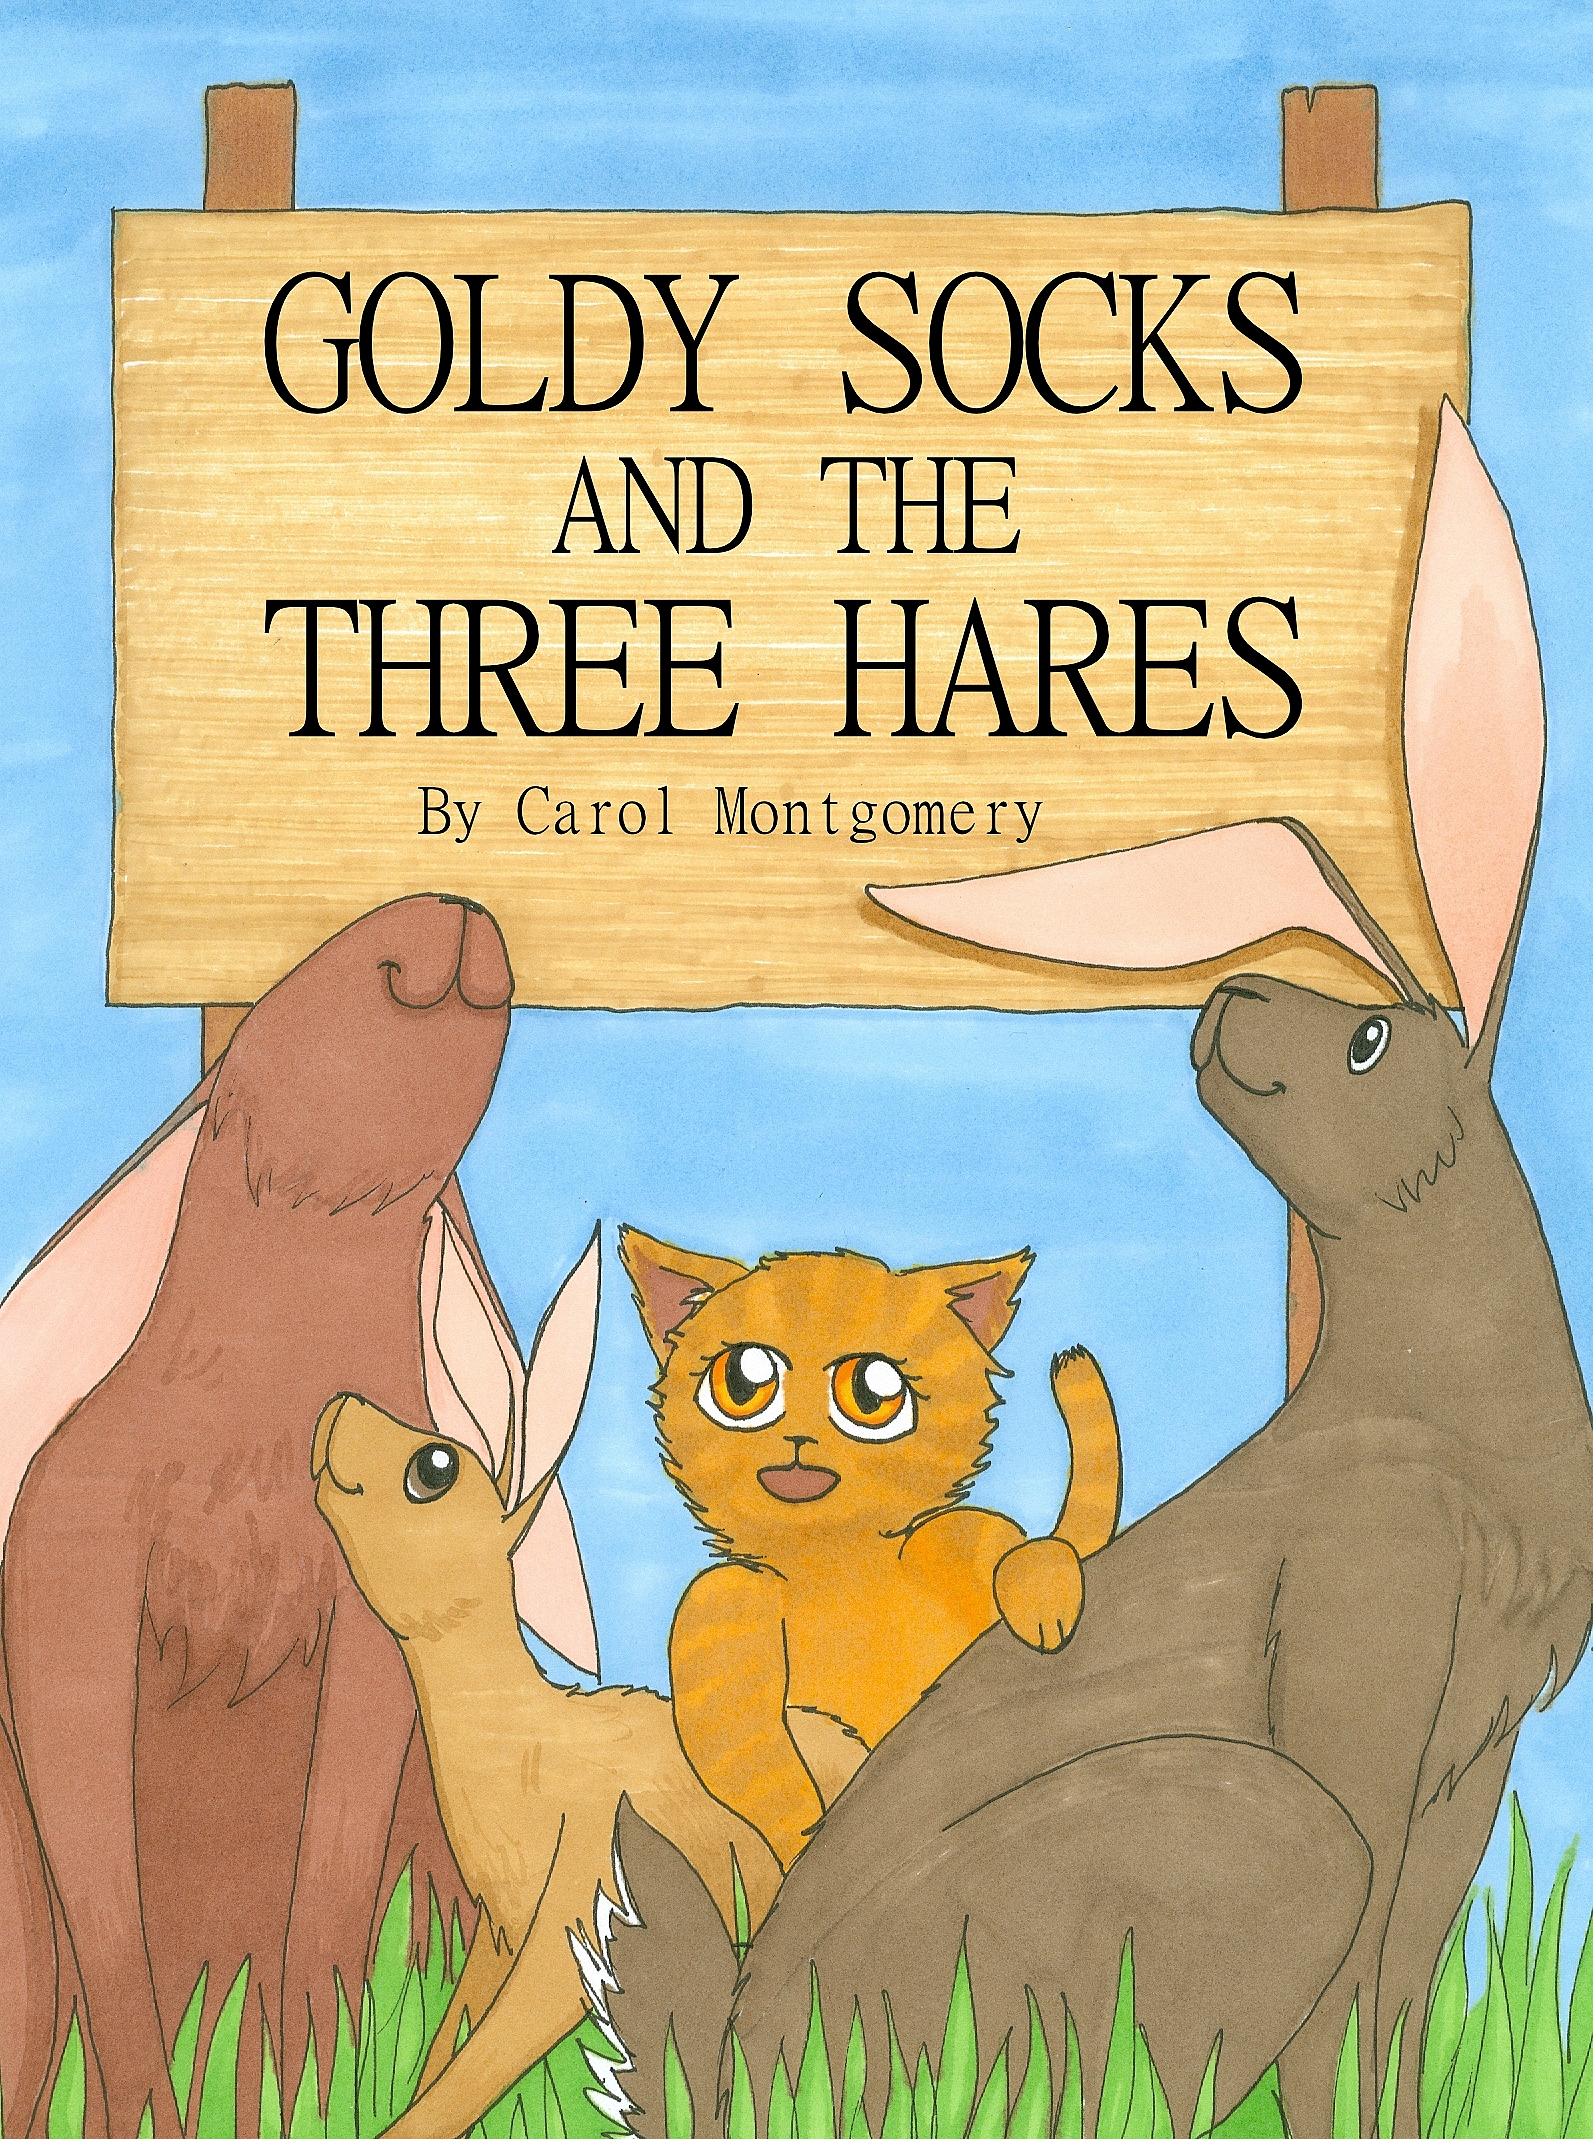 Goldy Socks and the Three Hares